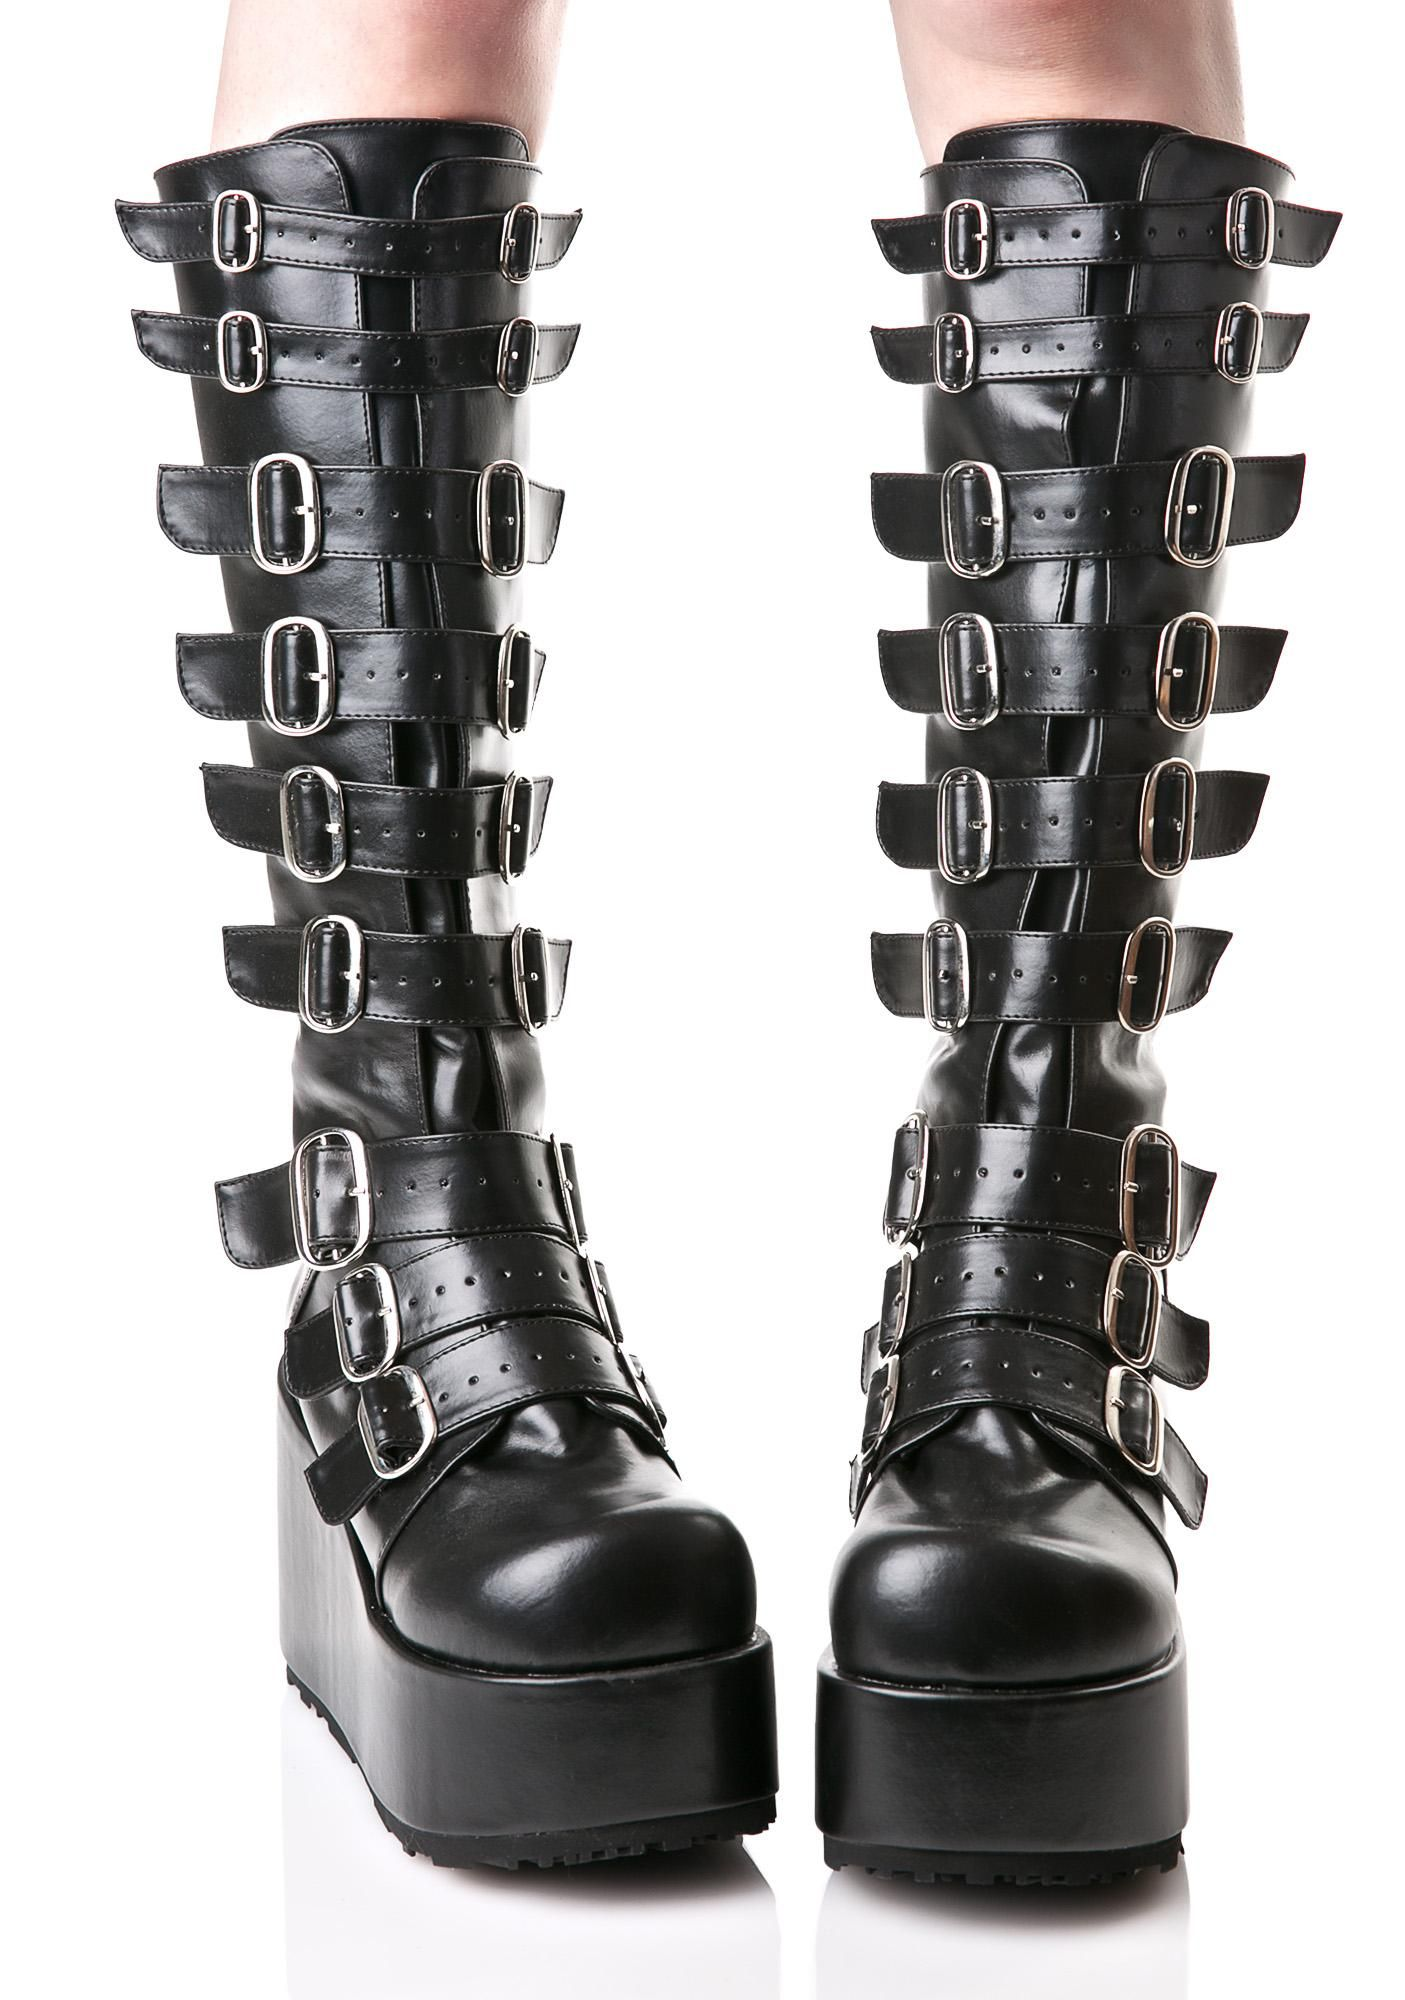 80476da3ce1 Demonia Concord Buckle Platform Boots are ready to strap ya in for the time  of yer lyfe. These hardcore knee-high boots are constructed from supa  supple ...